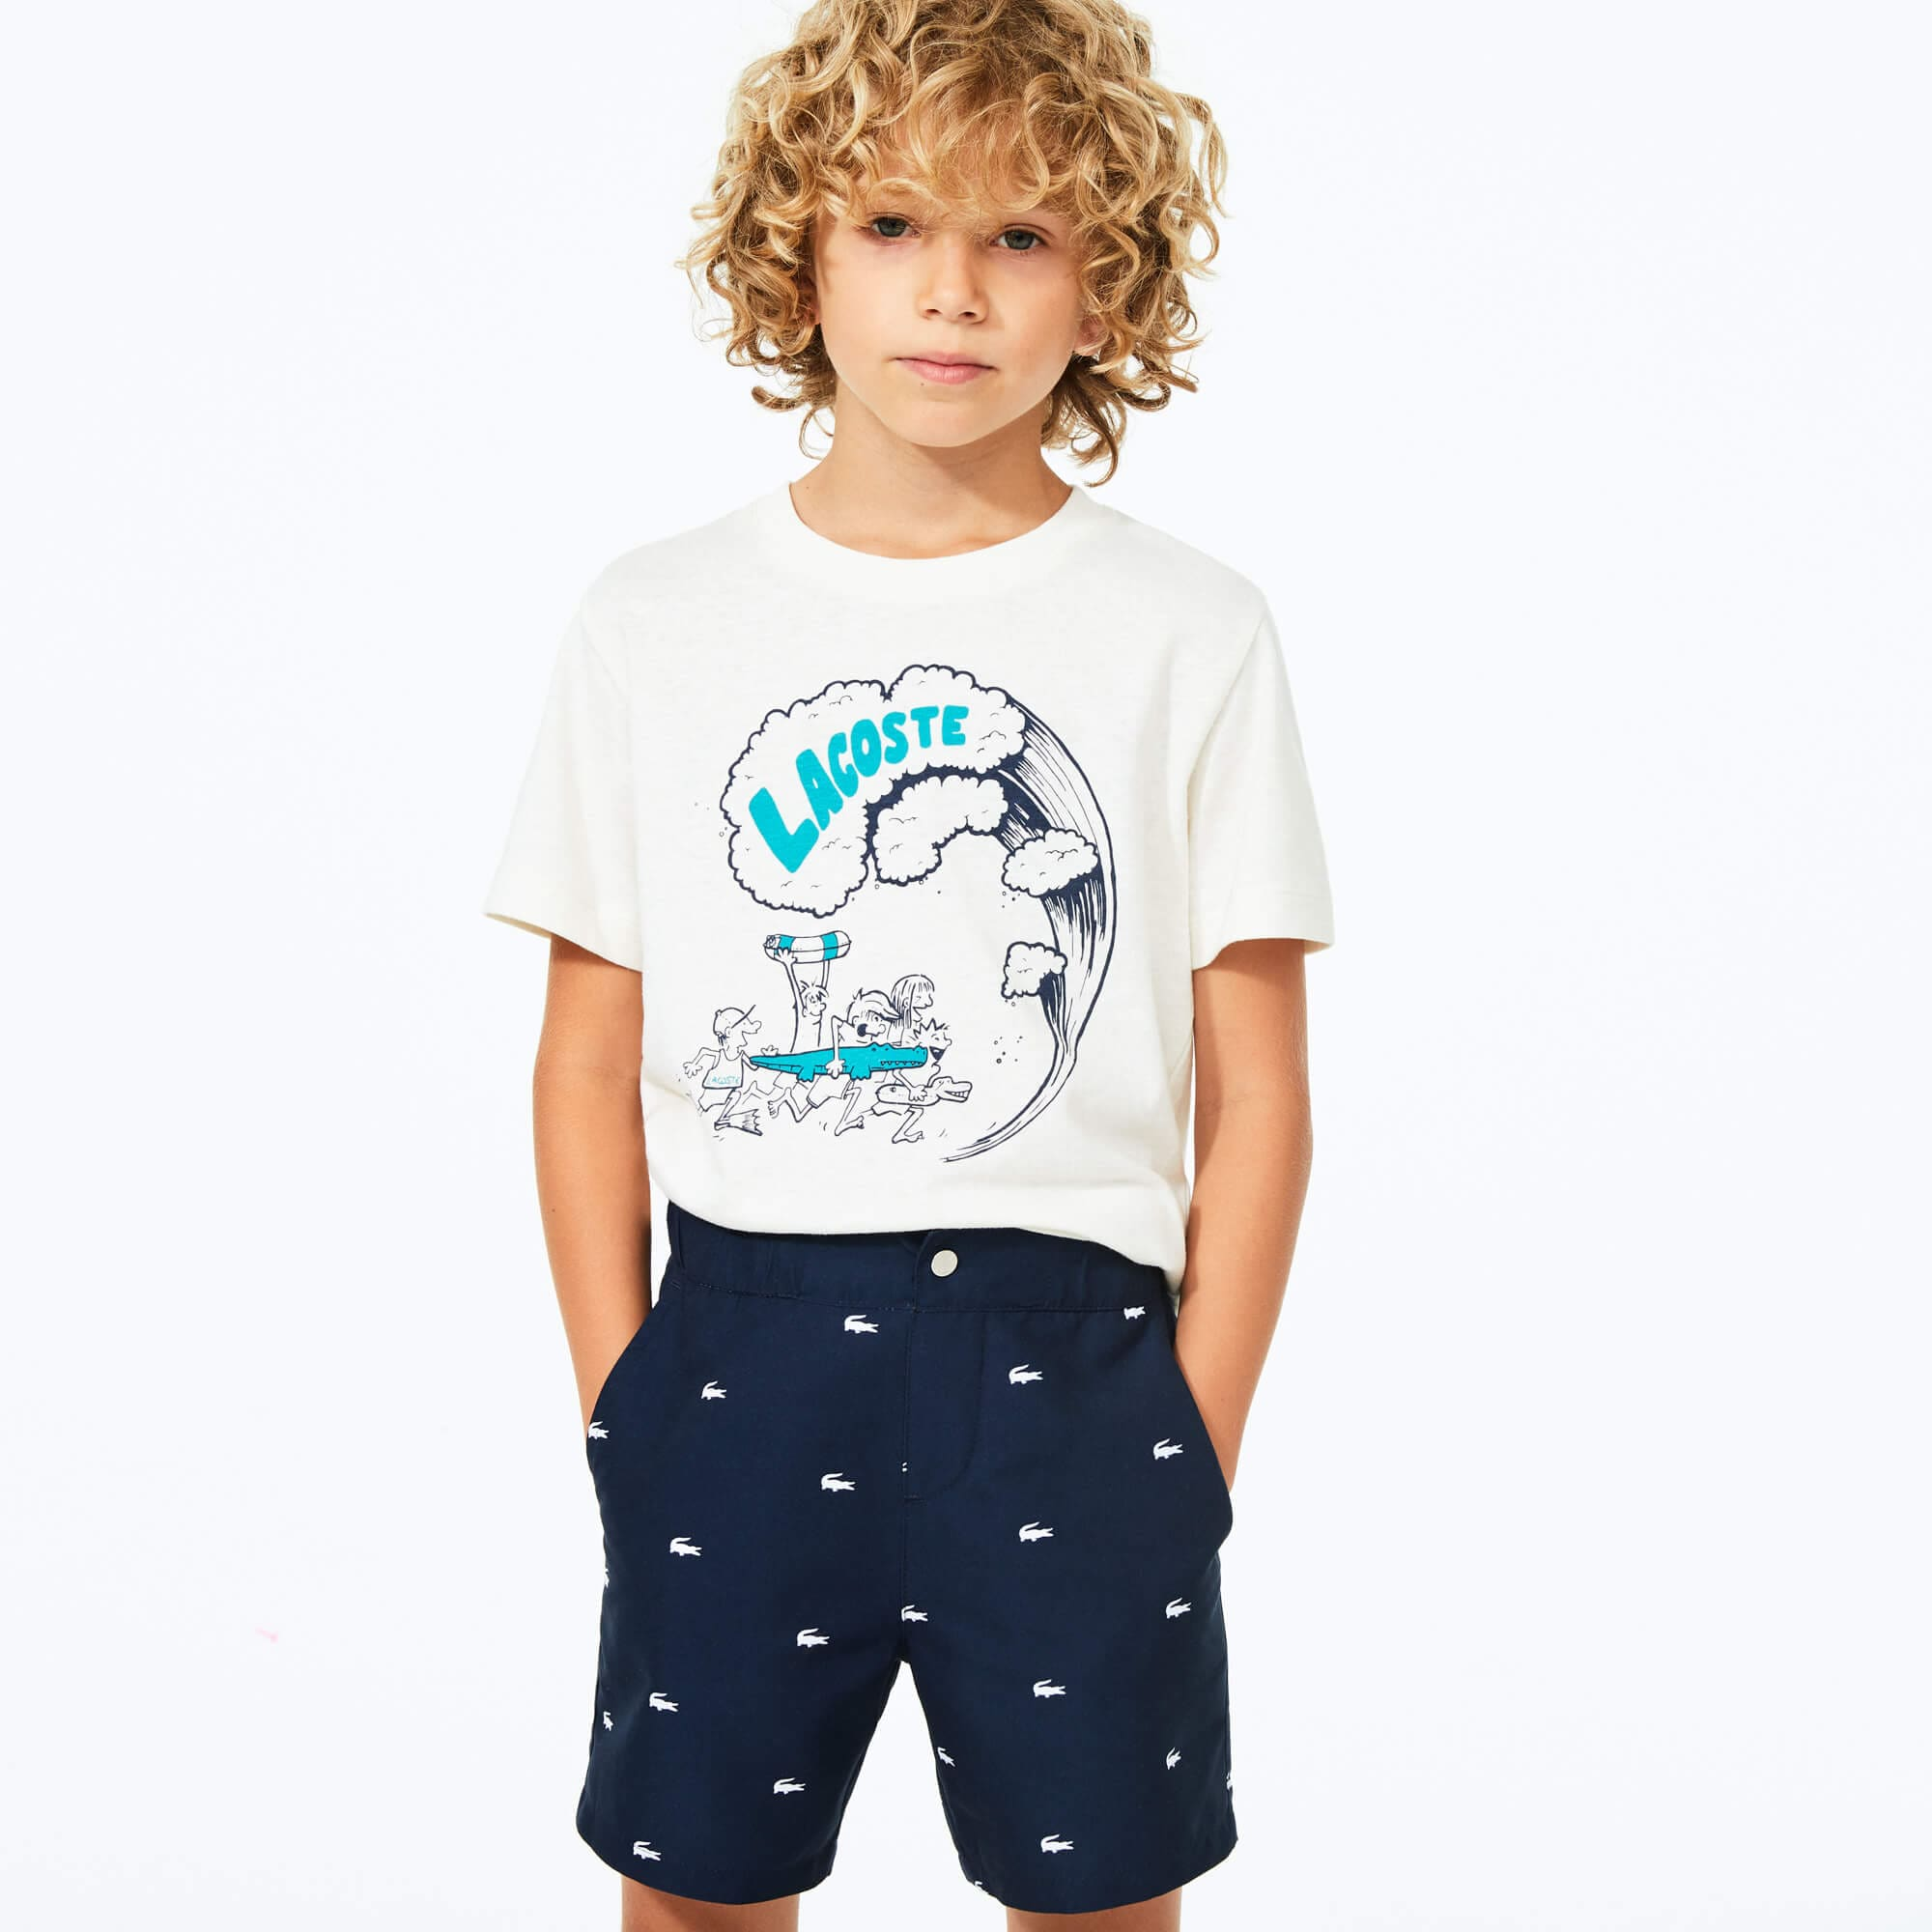 라코스테 Lacoste Boys' All-Over Croc Swim Trunks,Navy Blue / White • 525